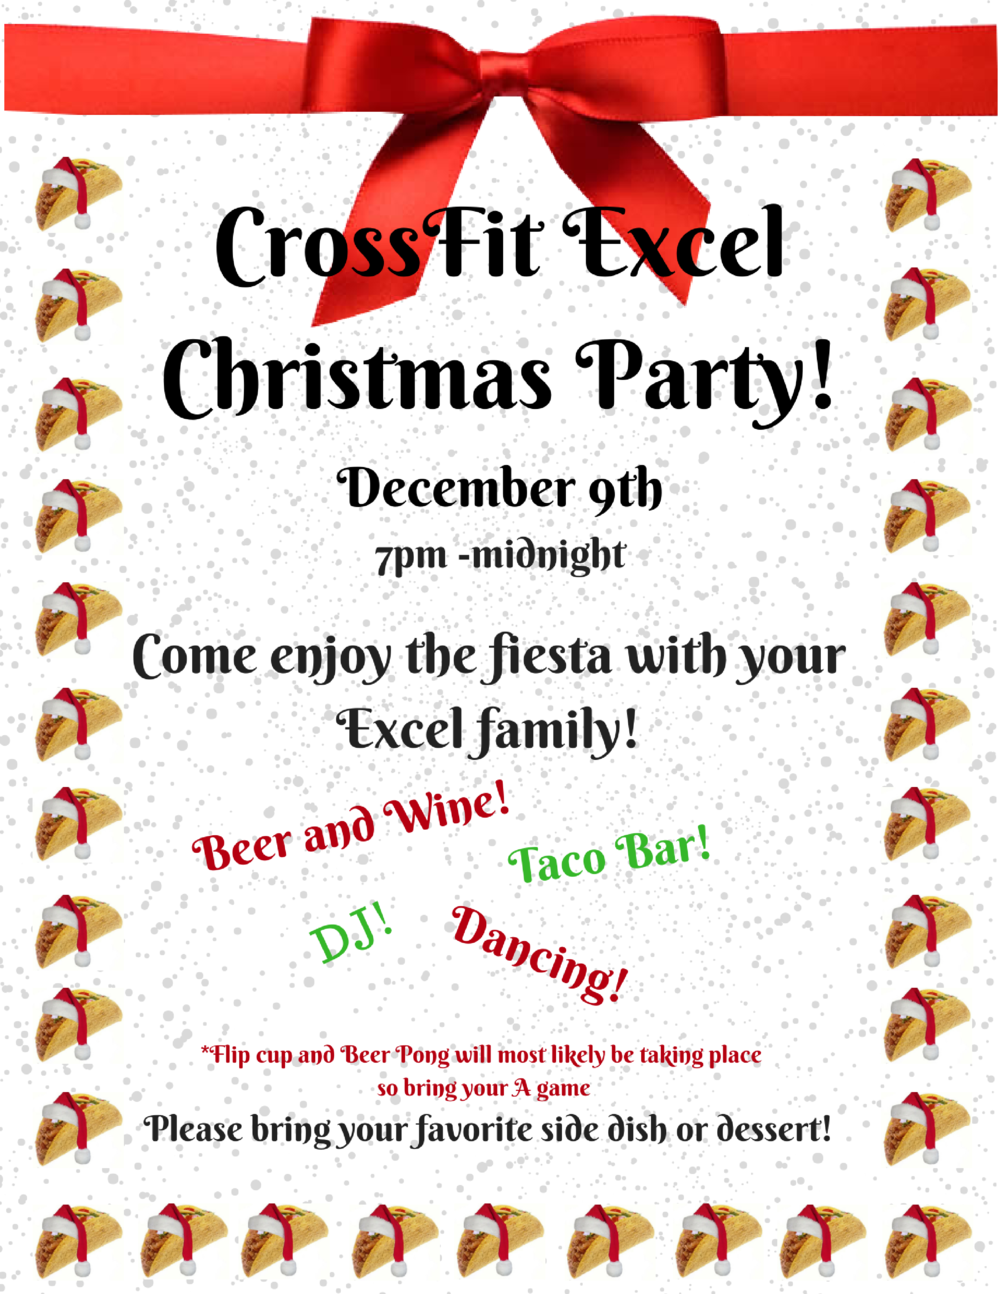 CrossFit Excel Christmas Party!.png